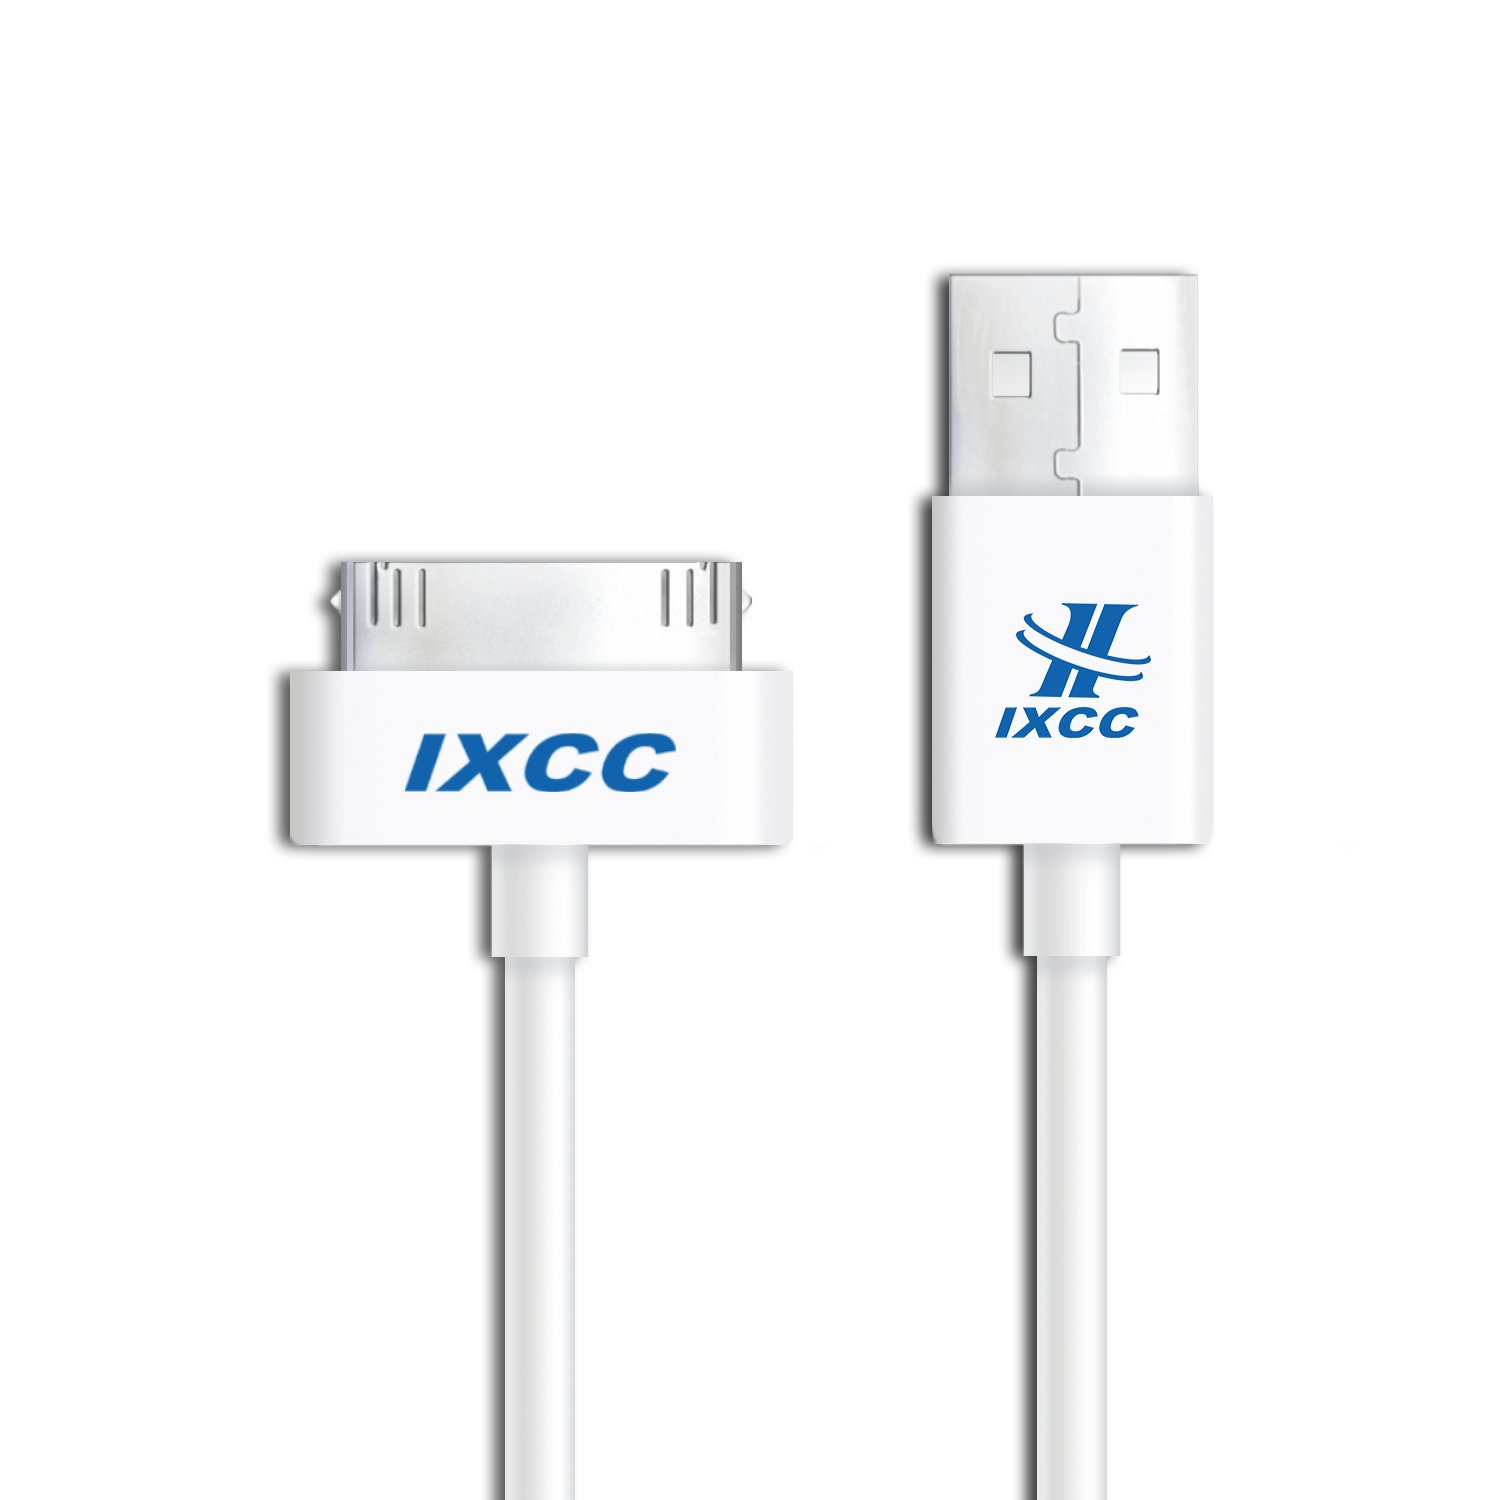 iXCC 10ft EXTRA LONG 30 Pin to USB SYNC and Charge Cable Cord for Apple iPhone 4/4s, iPod 1-6 Gen, iPod 1-4 Gen, iPad 1-3 Gen